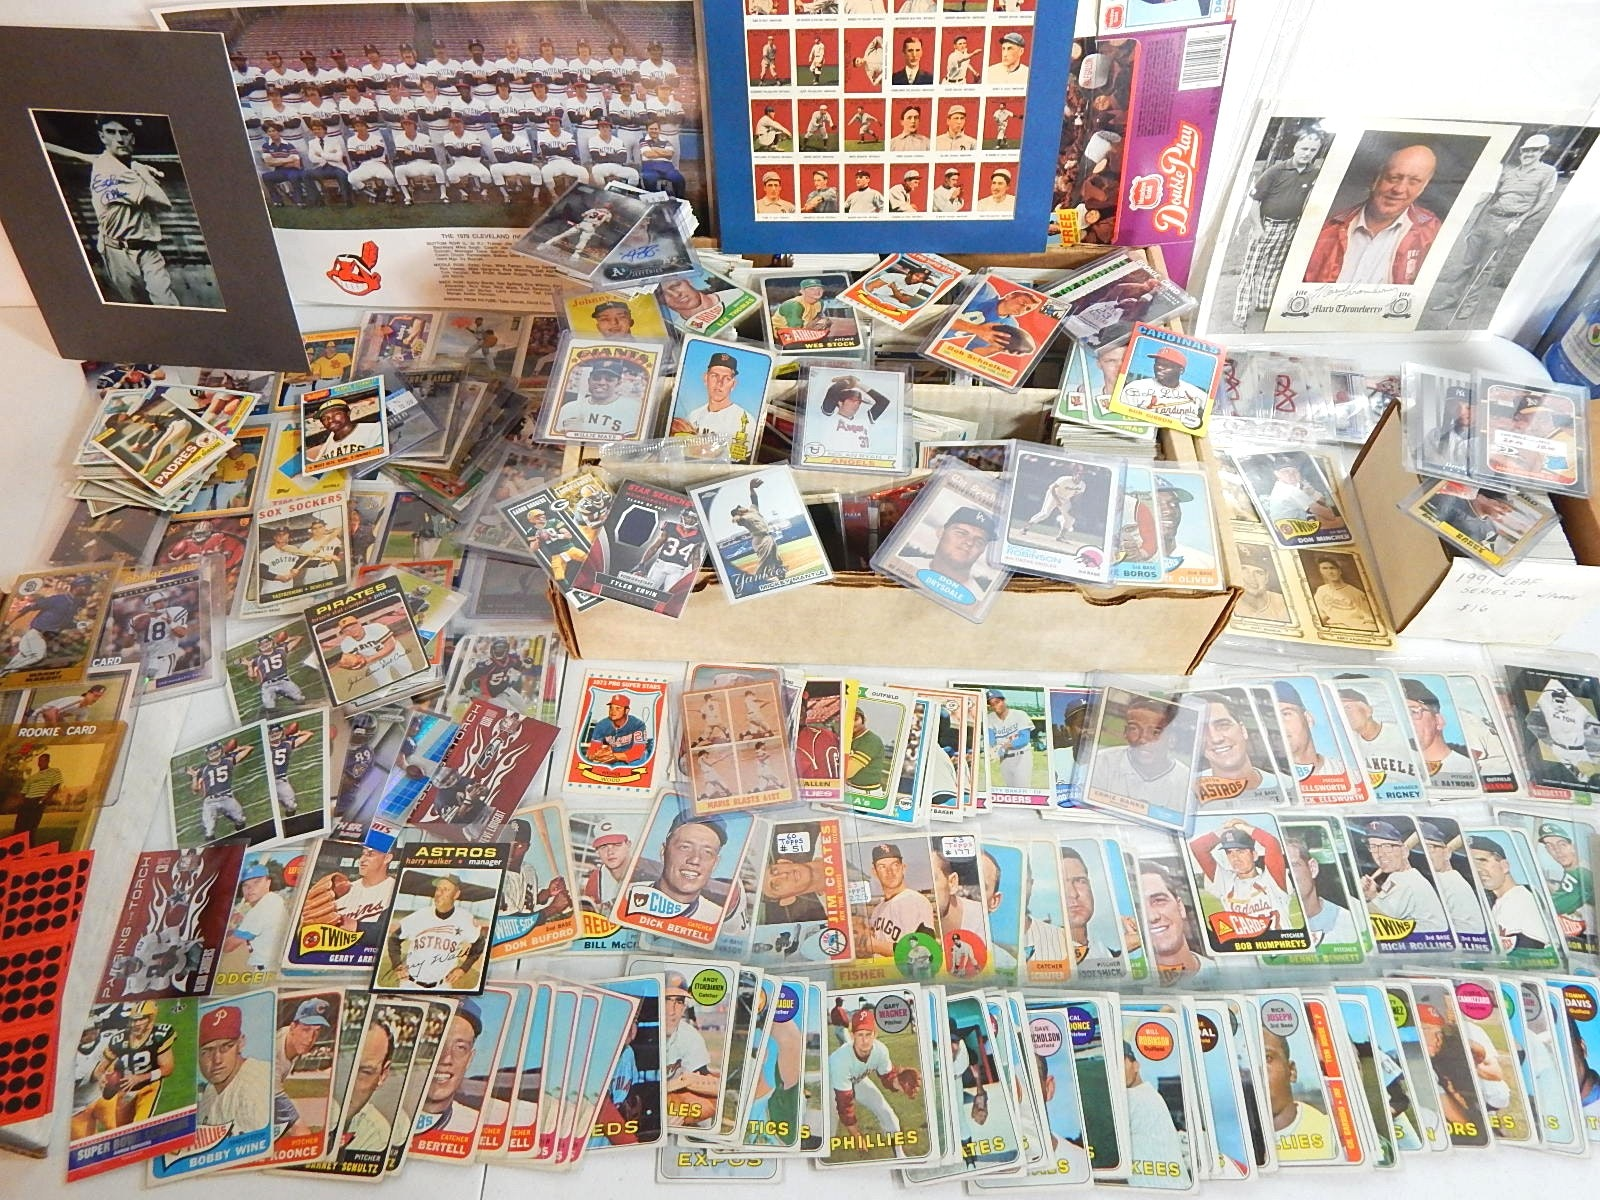 Large Sports Card Collection with Baseball, Basketball, Football-Over 2000 Cards